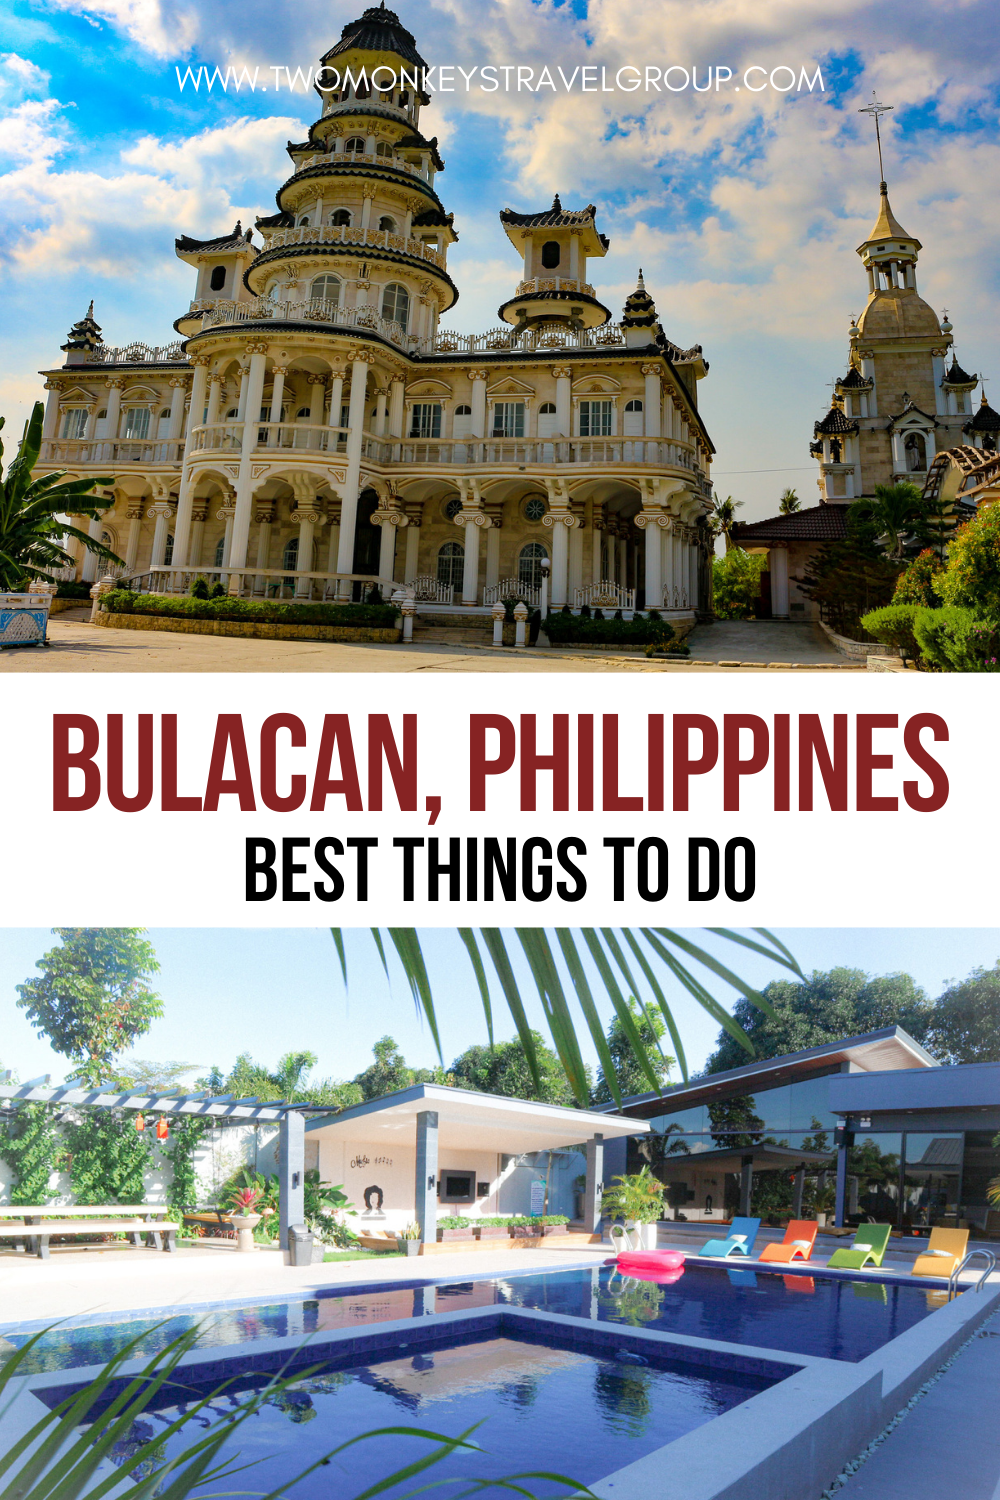 6 Best Things To Do in Bulacan, Philippines and Where To Stay